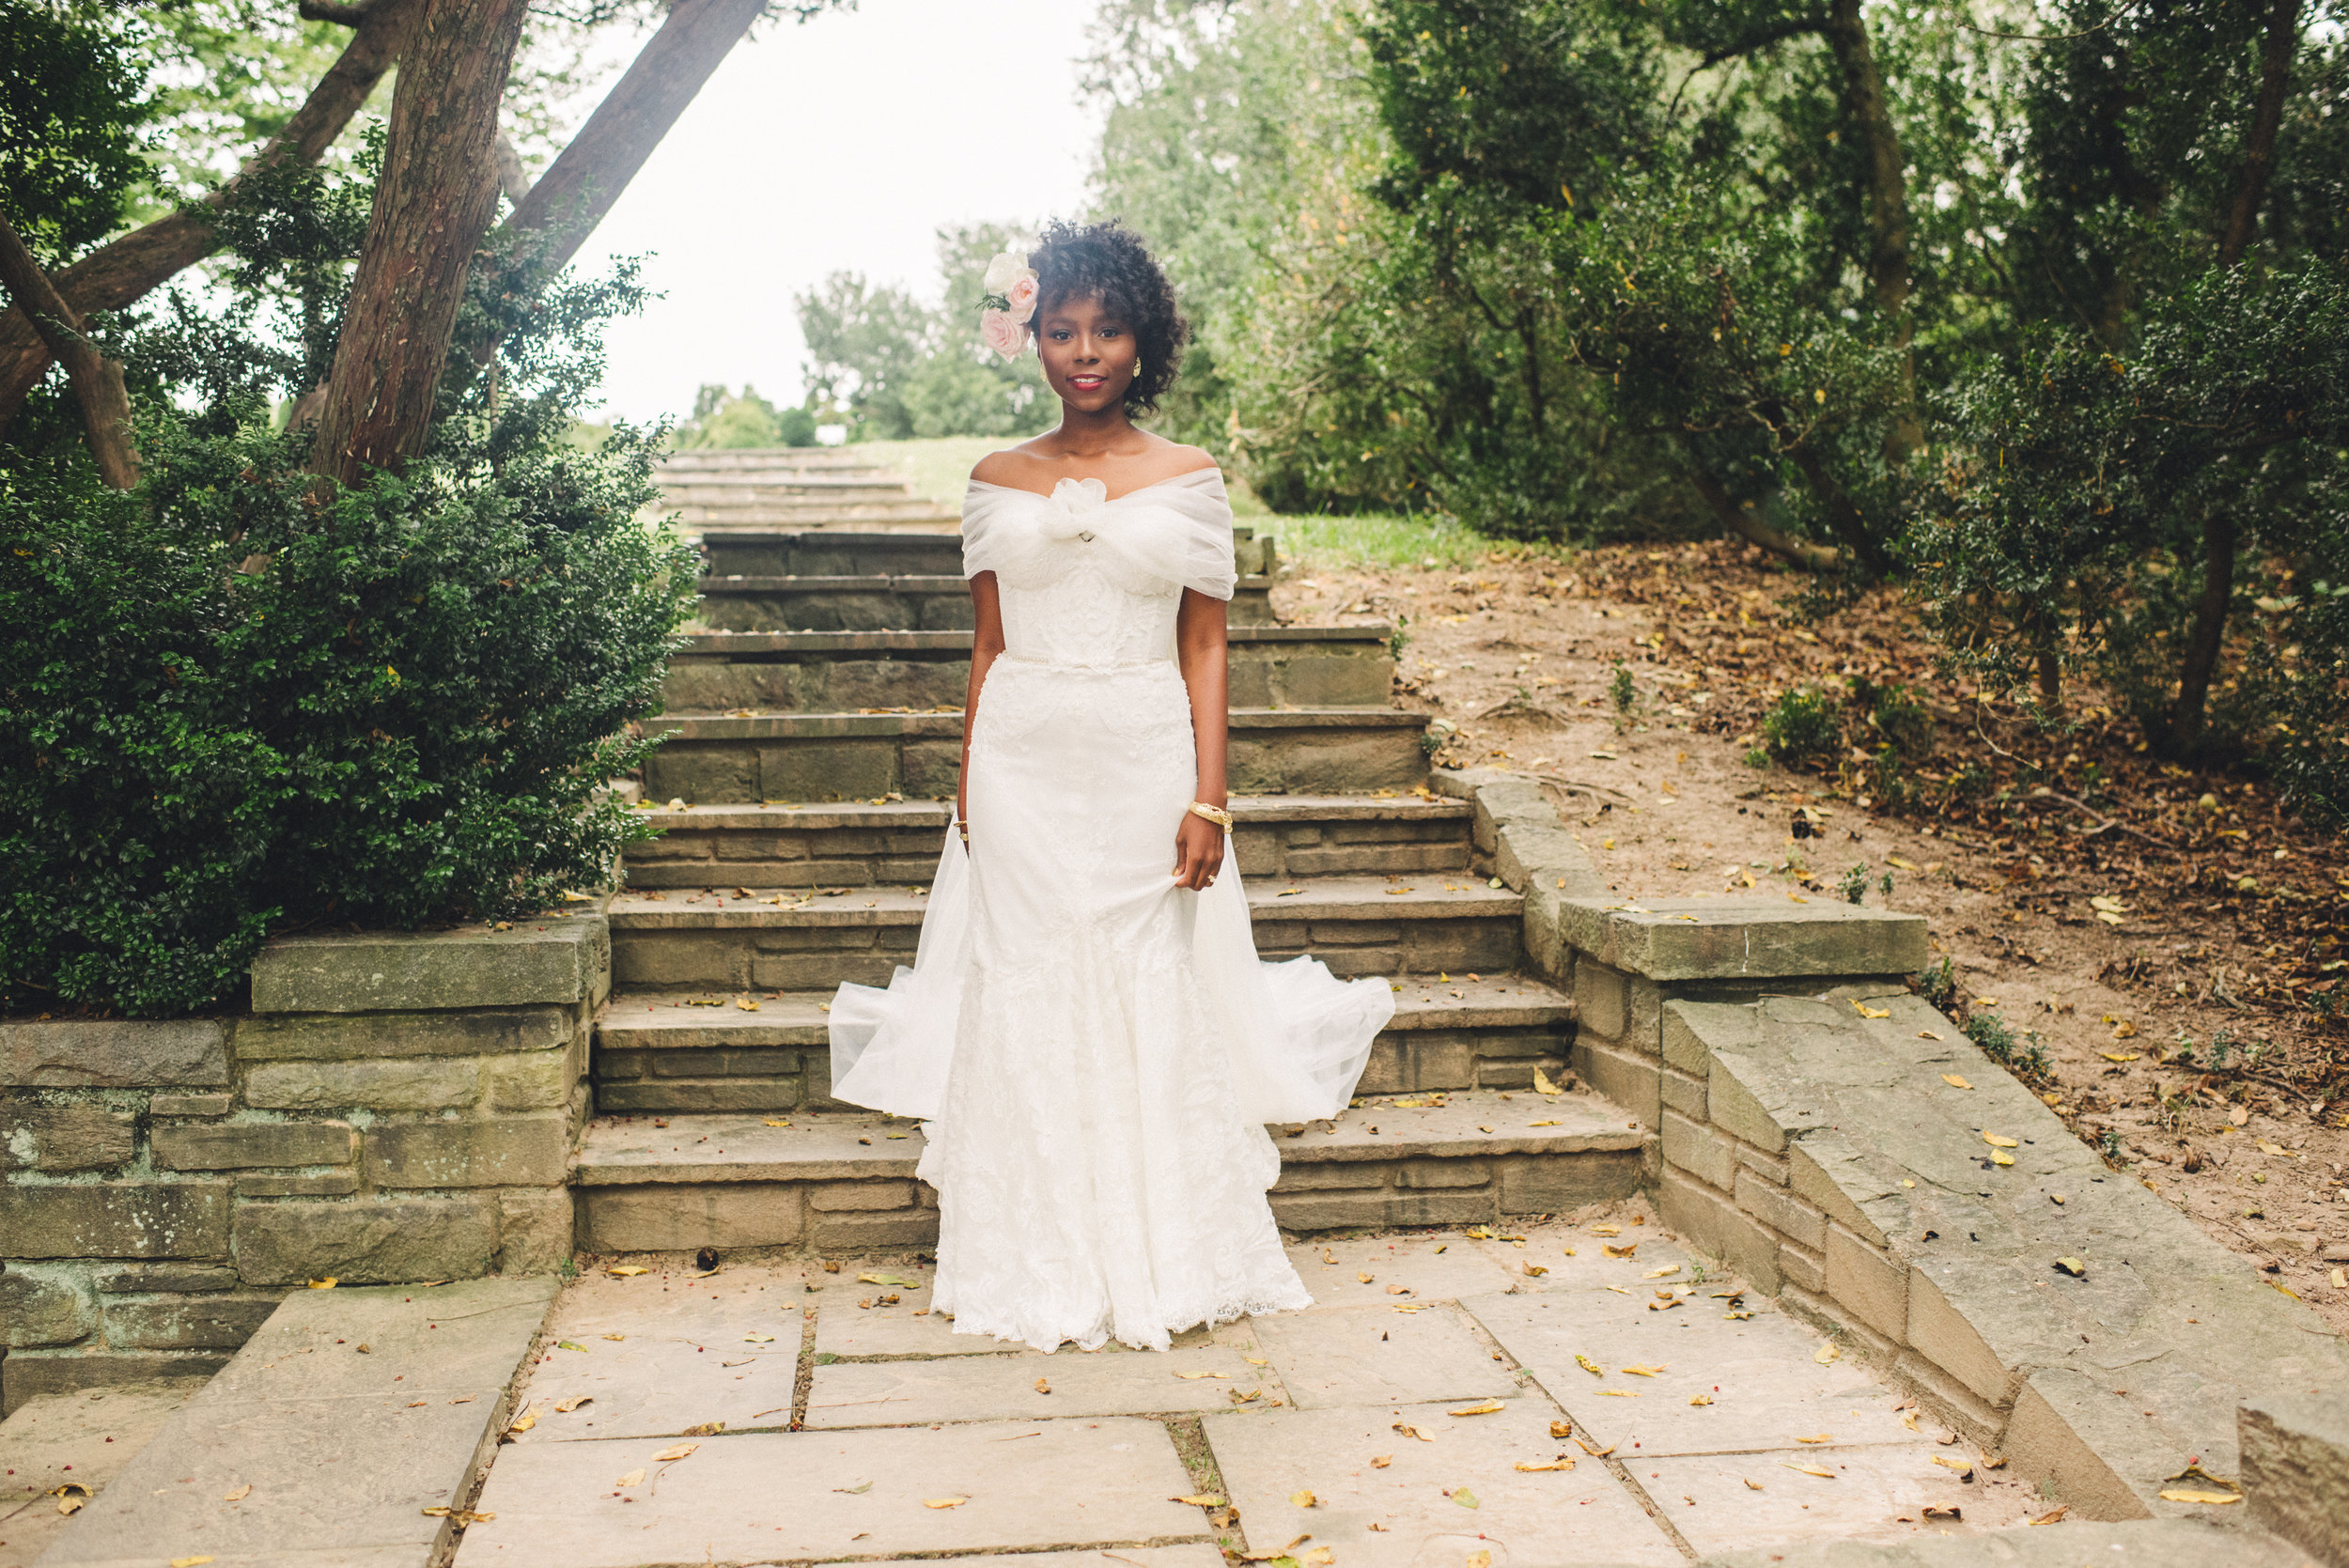 GLENVIEW MANSION WEDDING - INTIMATE WEDDING PHOTOGRAPHER - TWOTWENTY by CHI-CHI AGBIM-128.jpg